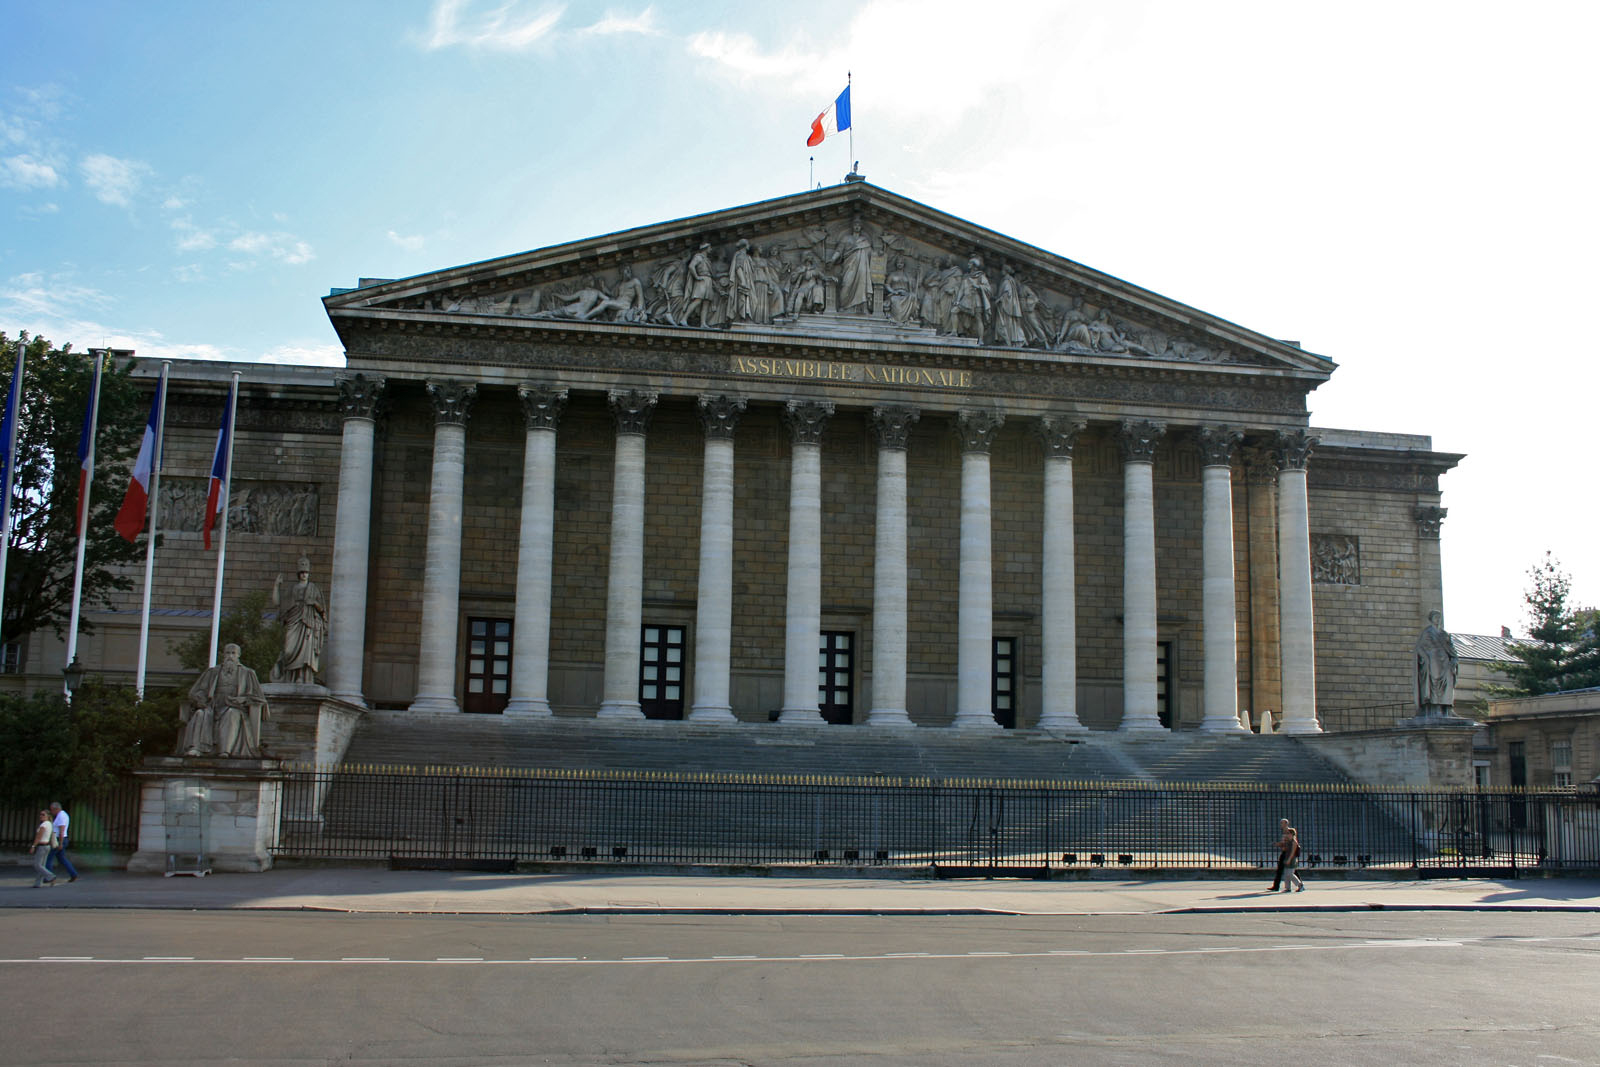 1600 assemblee nationale francaise 10